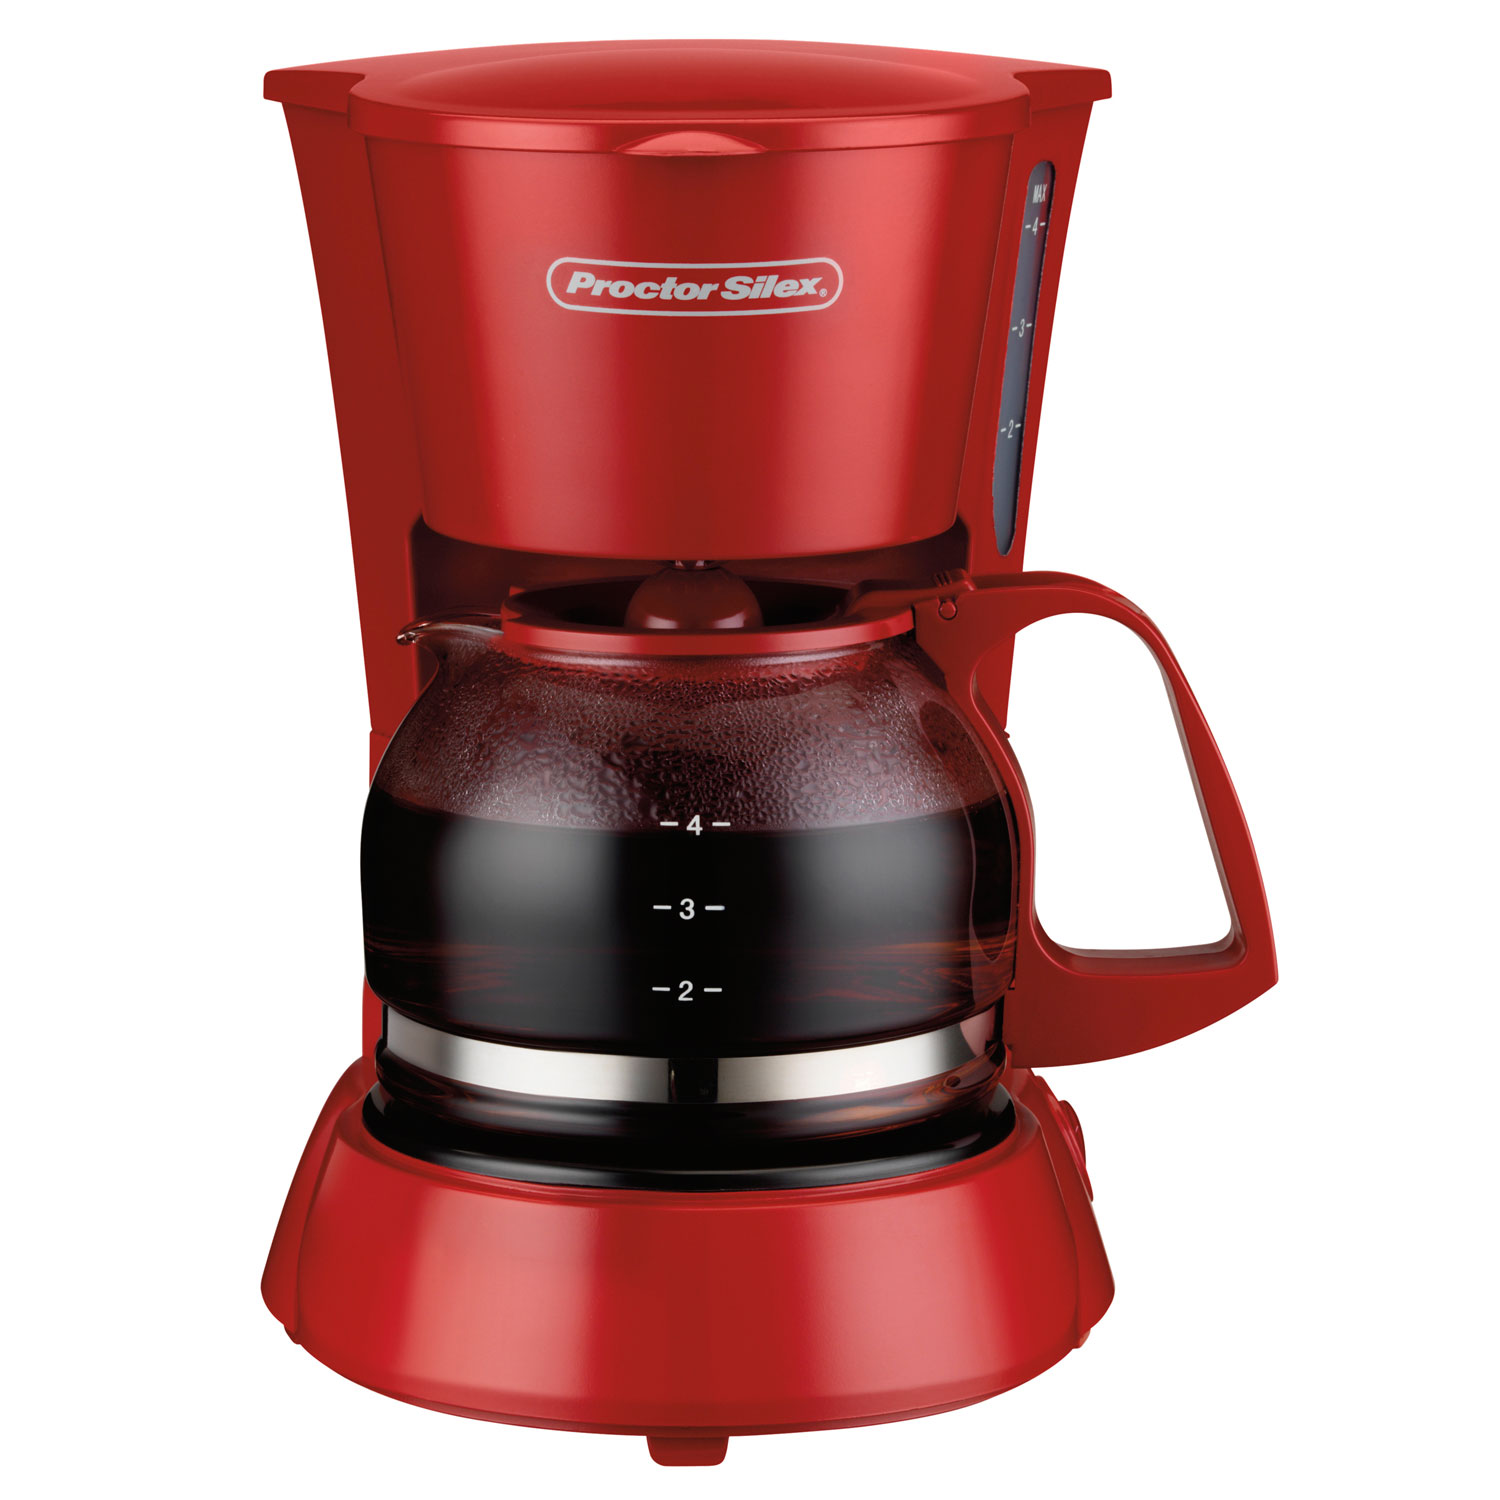 4 Cup Coffee Maker (red)-48133